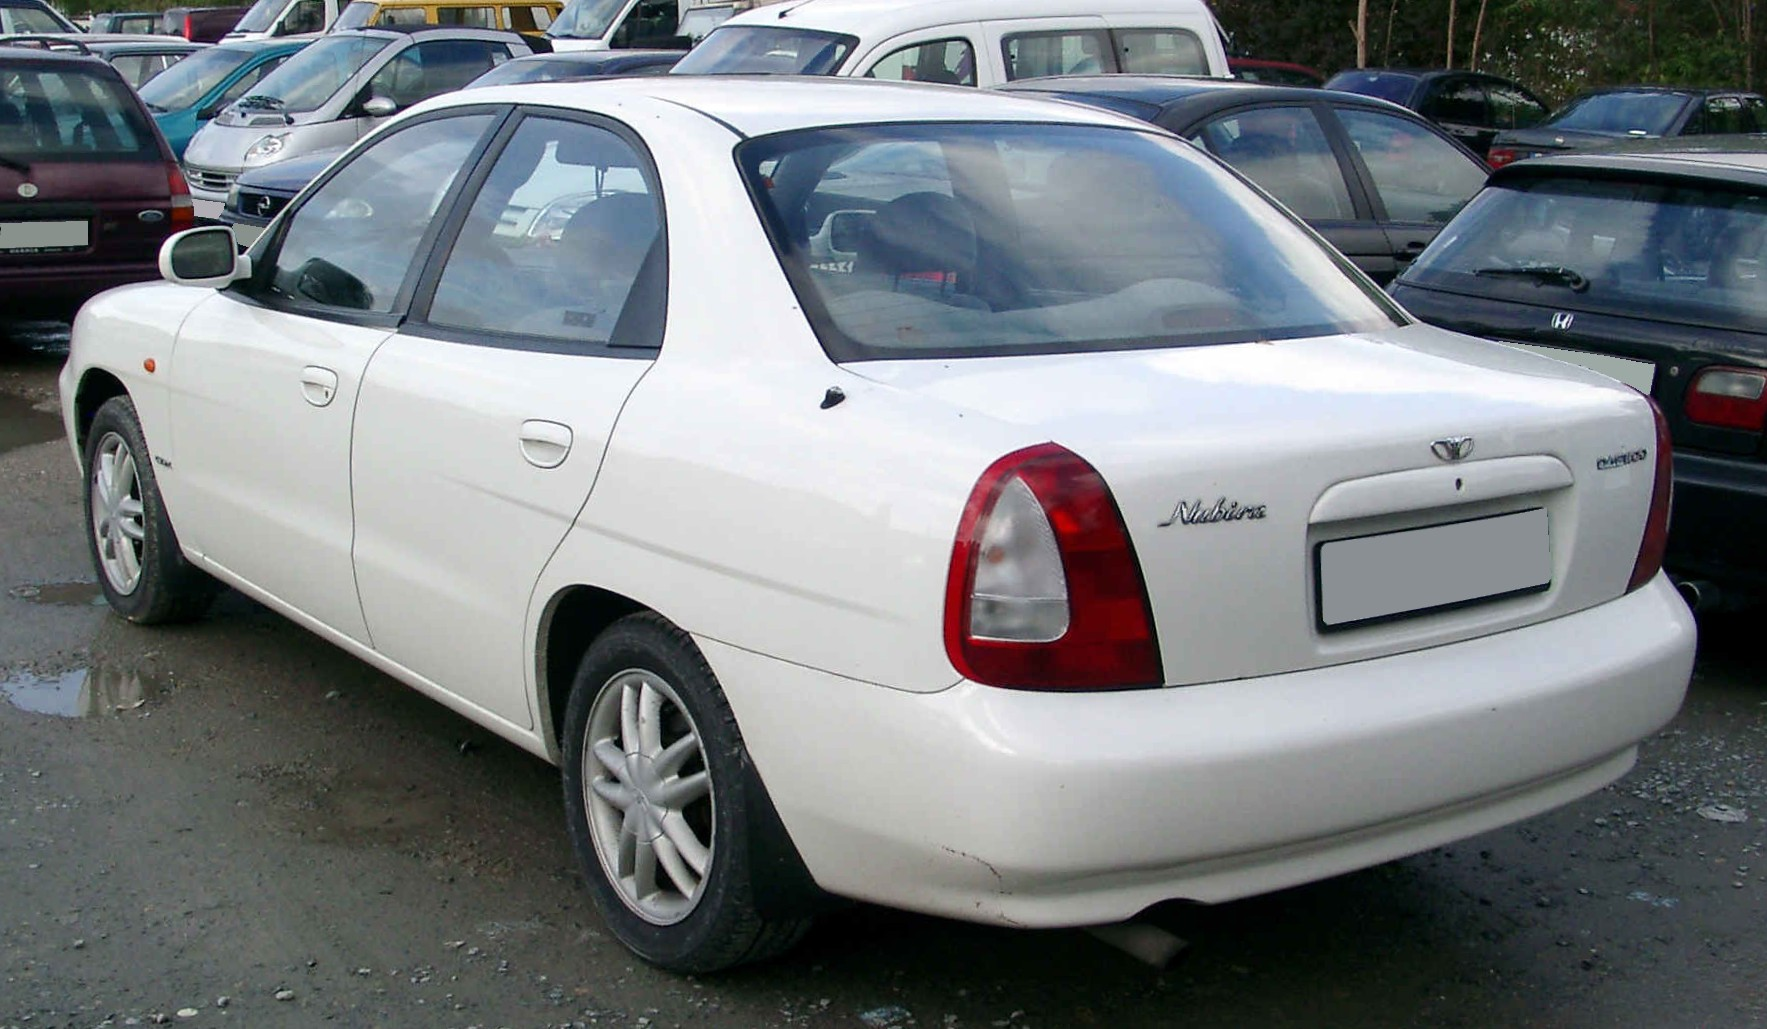 File Daewoo Nubira rear 20081007 on 2002 daewoo lanos